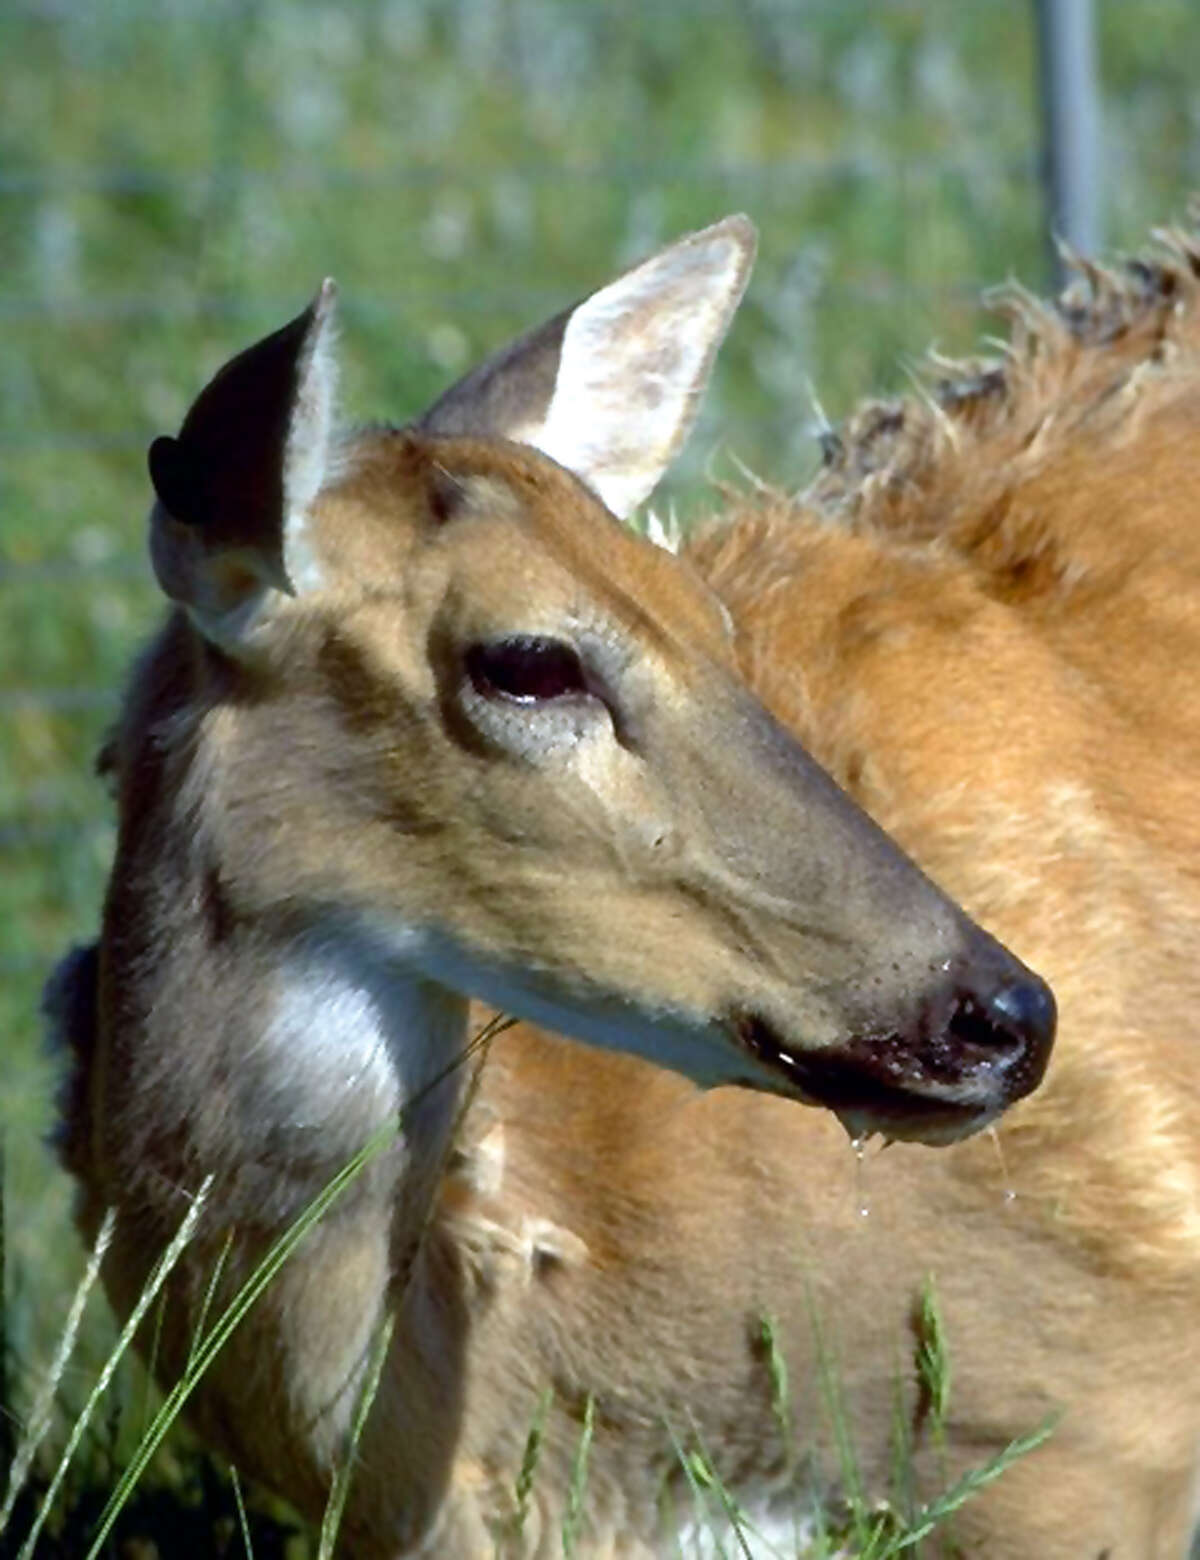 Emaciated and drooling, a deer in Colorado shows signs of chronic wasting disease, which has been documented in captive and free-range deer in 24 states and two Canadian provinces. It is similar to mad cow disease.